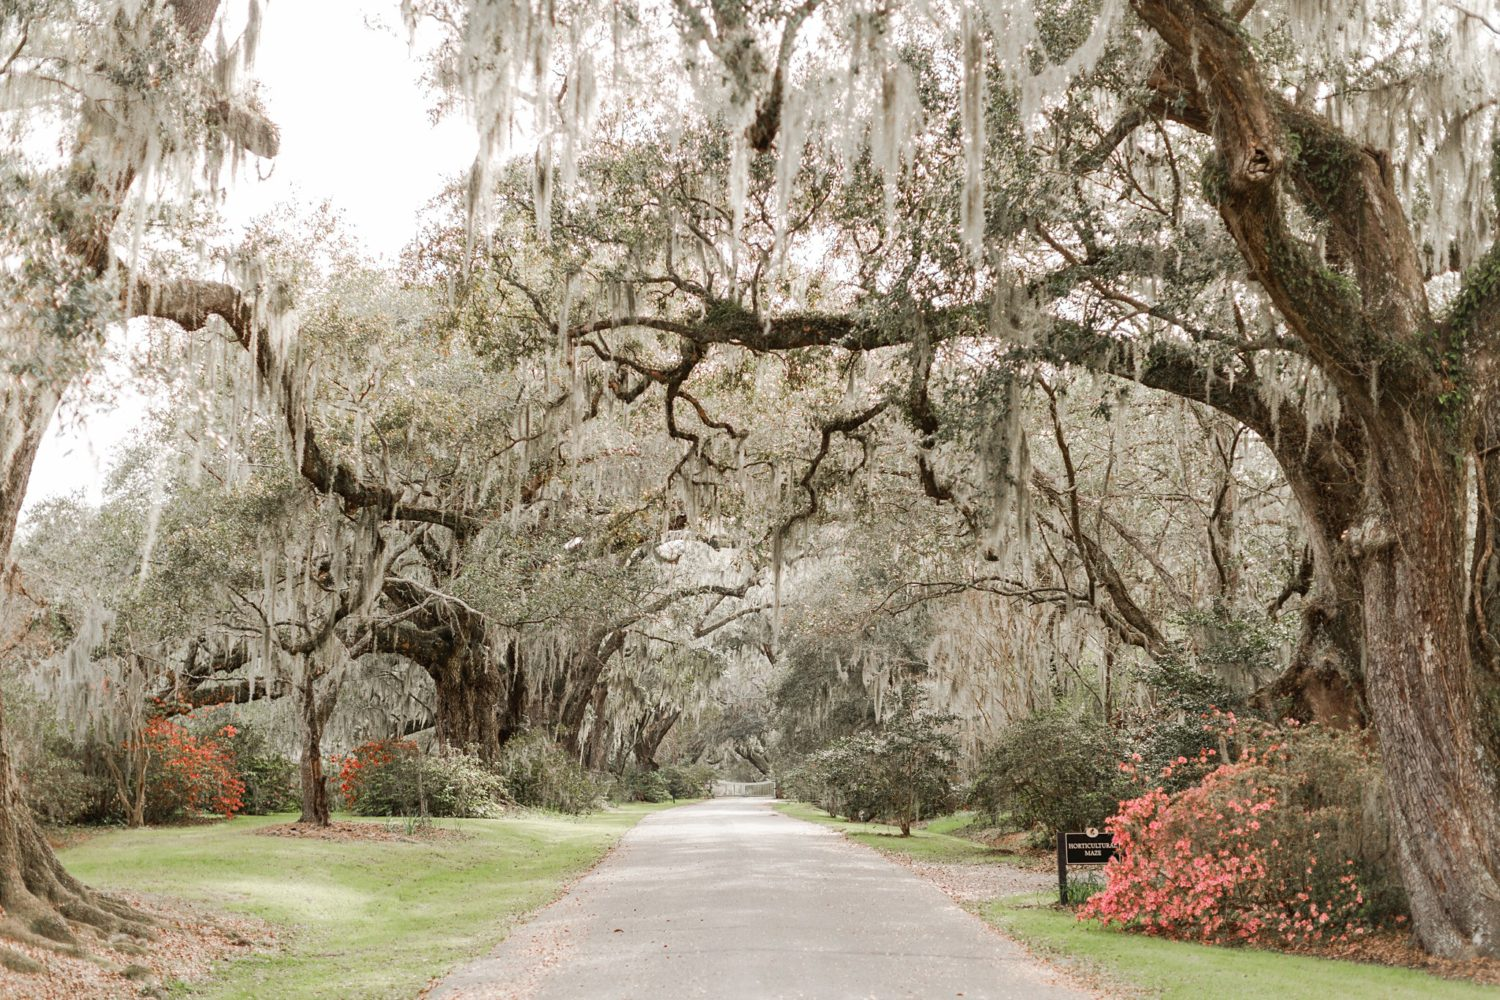 A Charleston, South Carolina Travel Guide for Photograhers